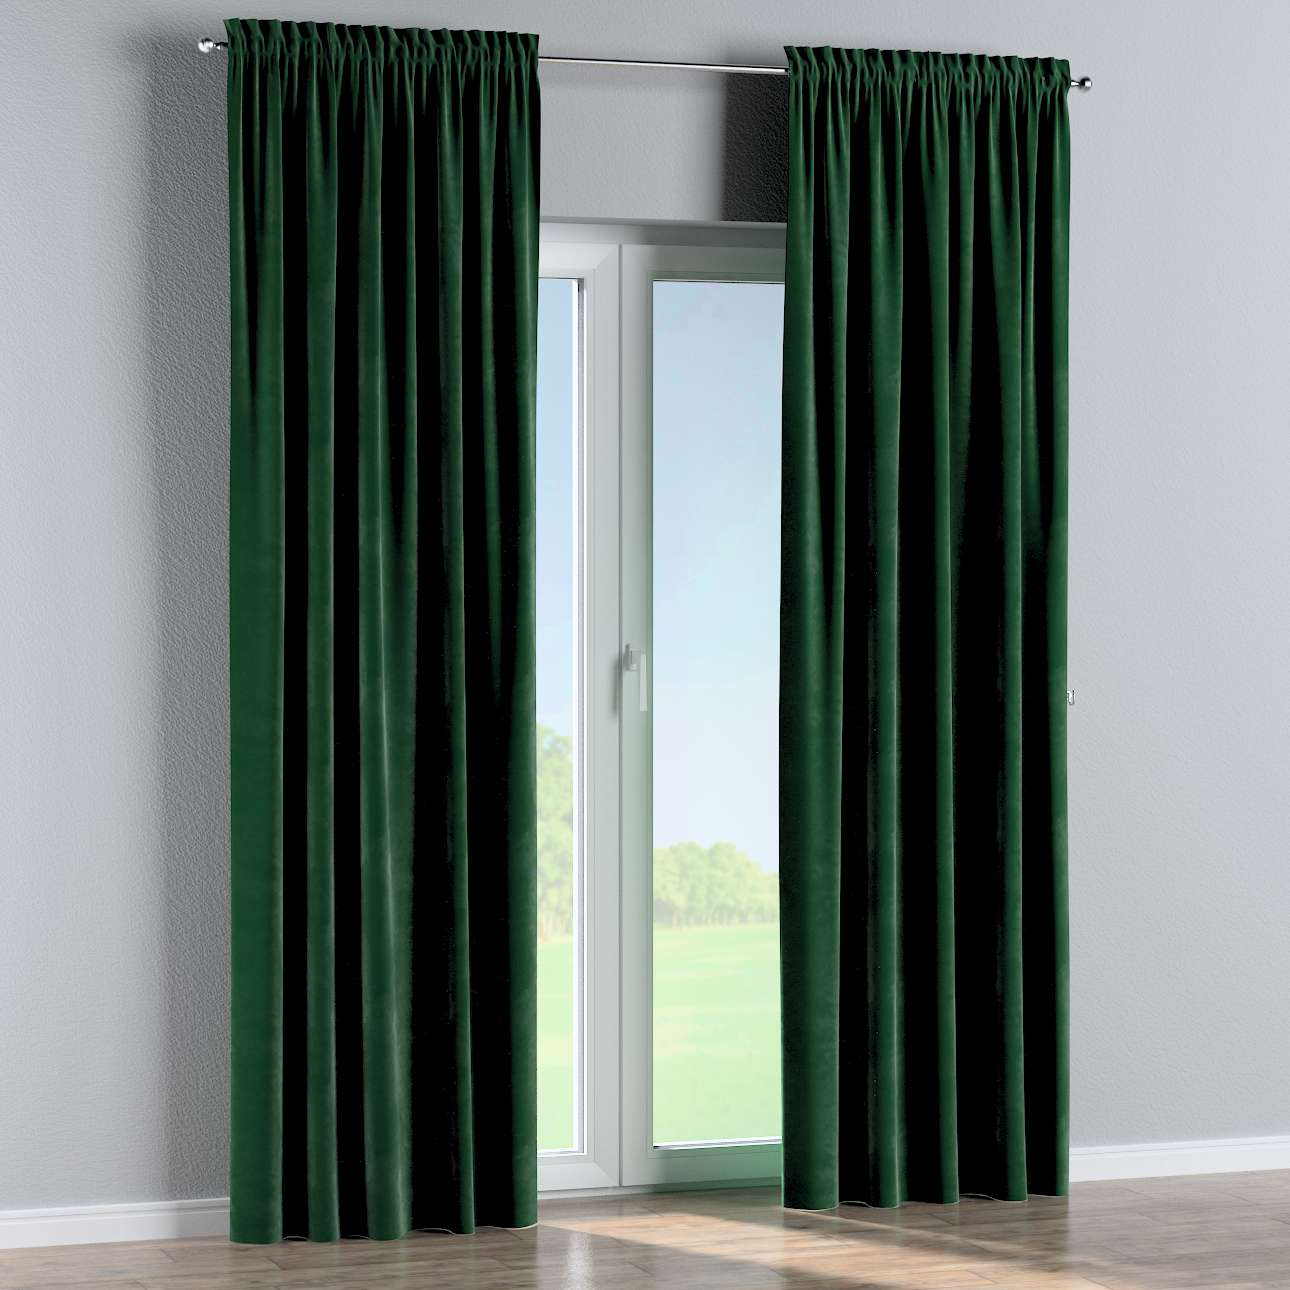 Slot and frill curtains 130 × 260 cm (51 × 102 inch) in collection Velvet, fabric: 704-13